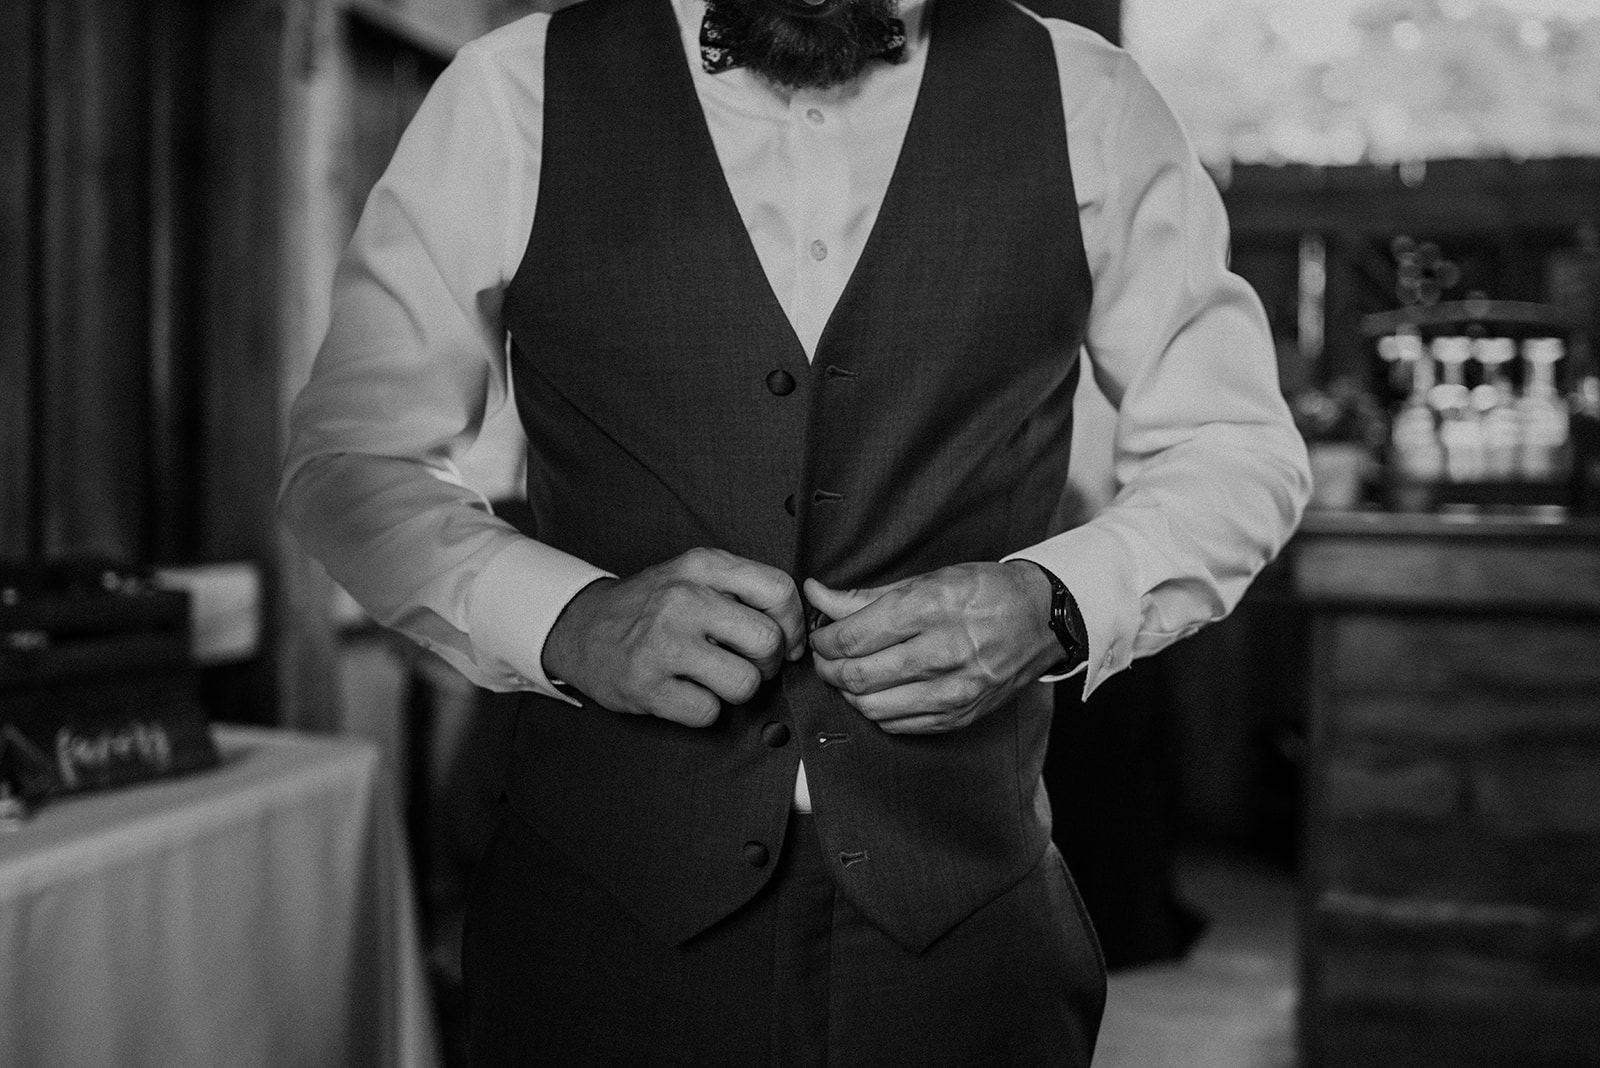 overthevineswisconsinwedding_0436.jpg